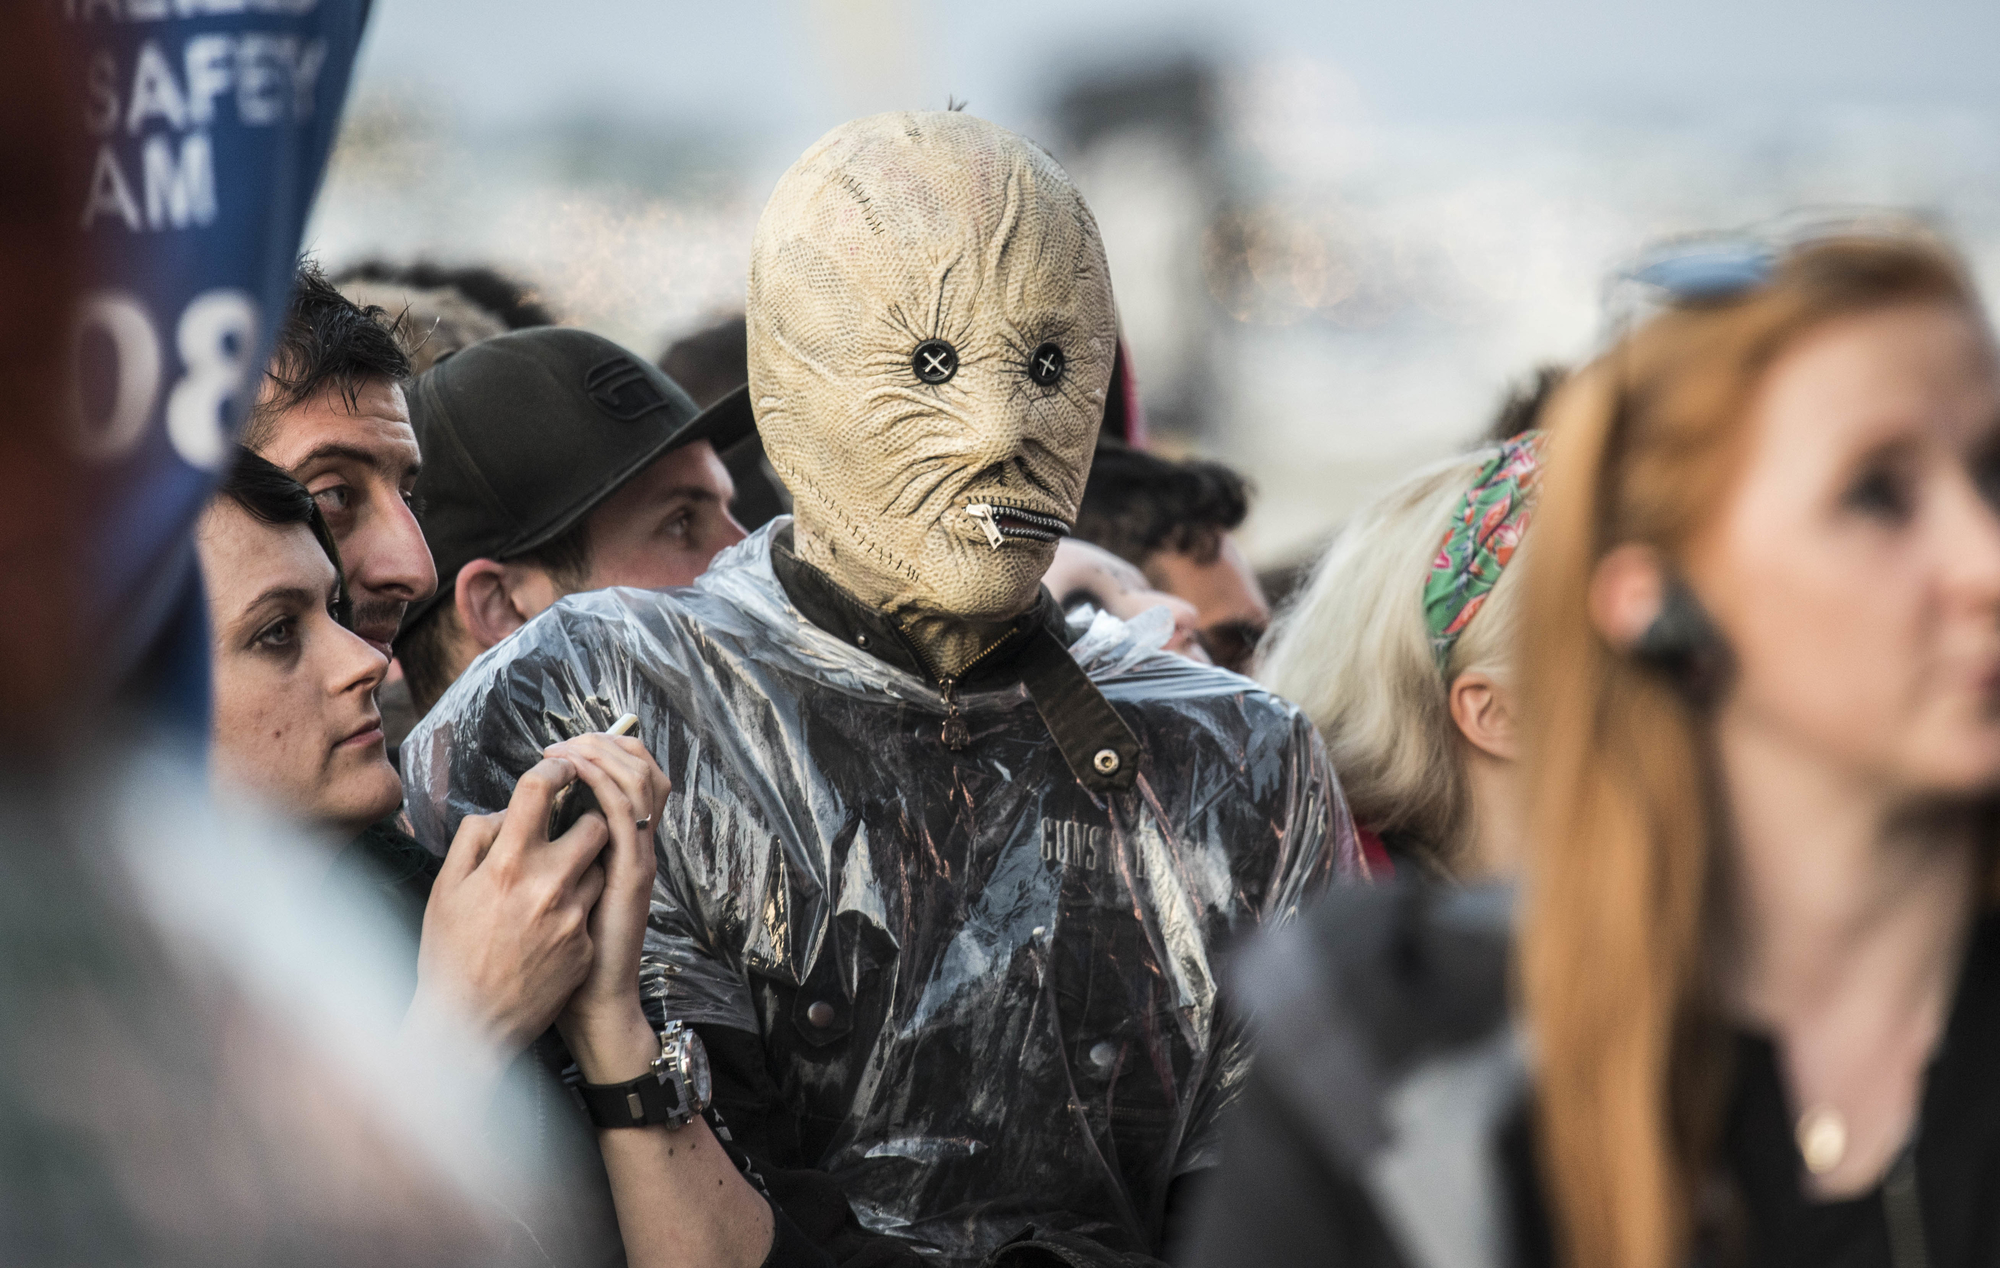 Slipknot's blistering set at Download festival 2019 showed